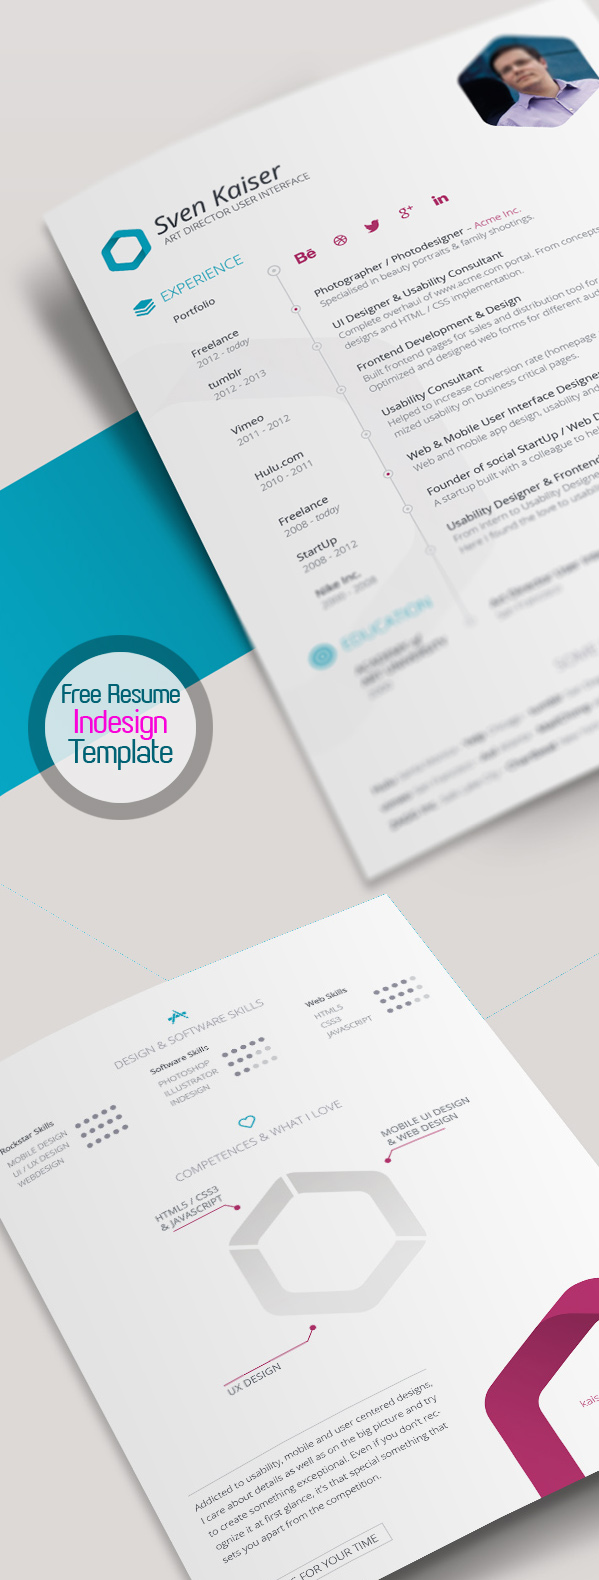 free resume template for indesign vita cv. Resume Example. Resume CV Cover Letter